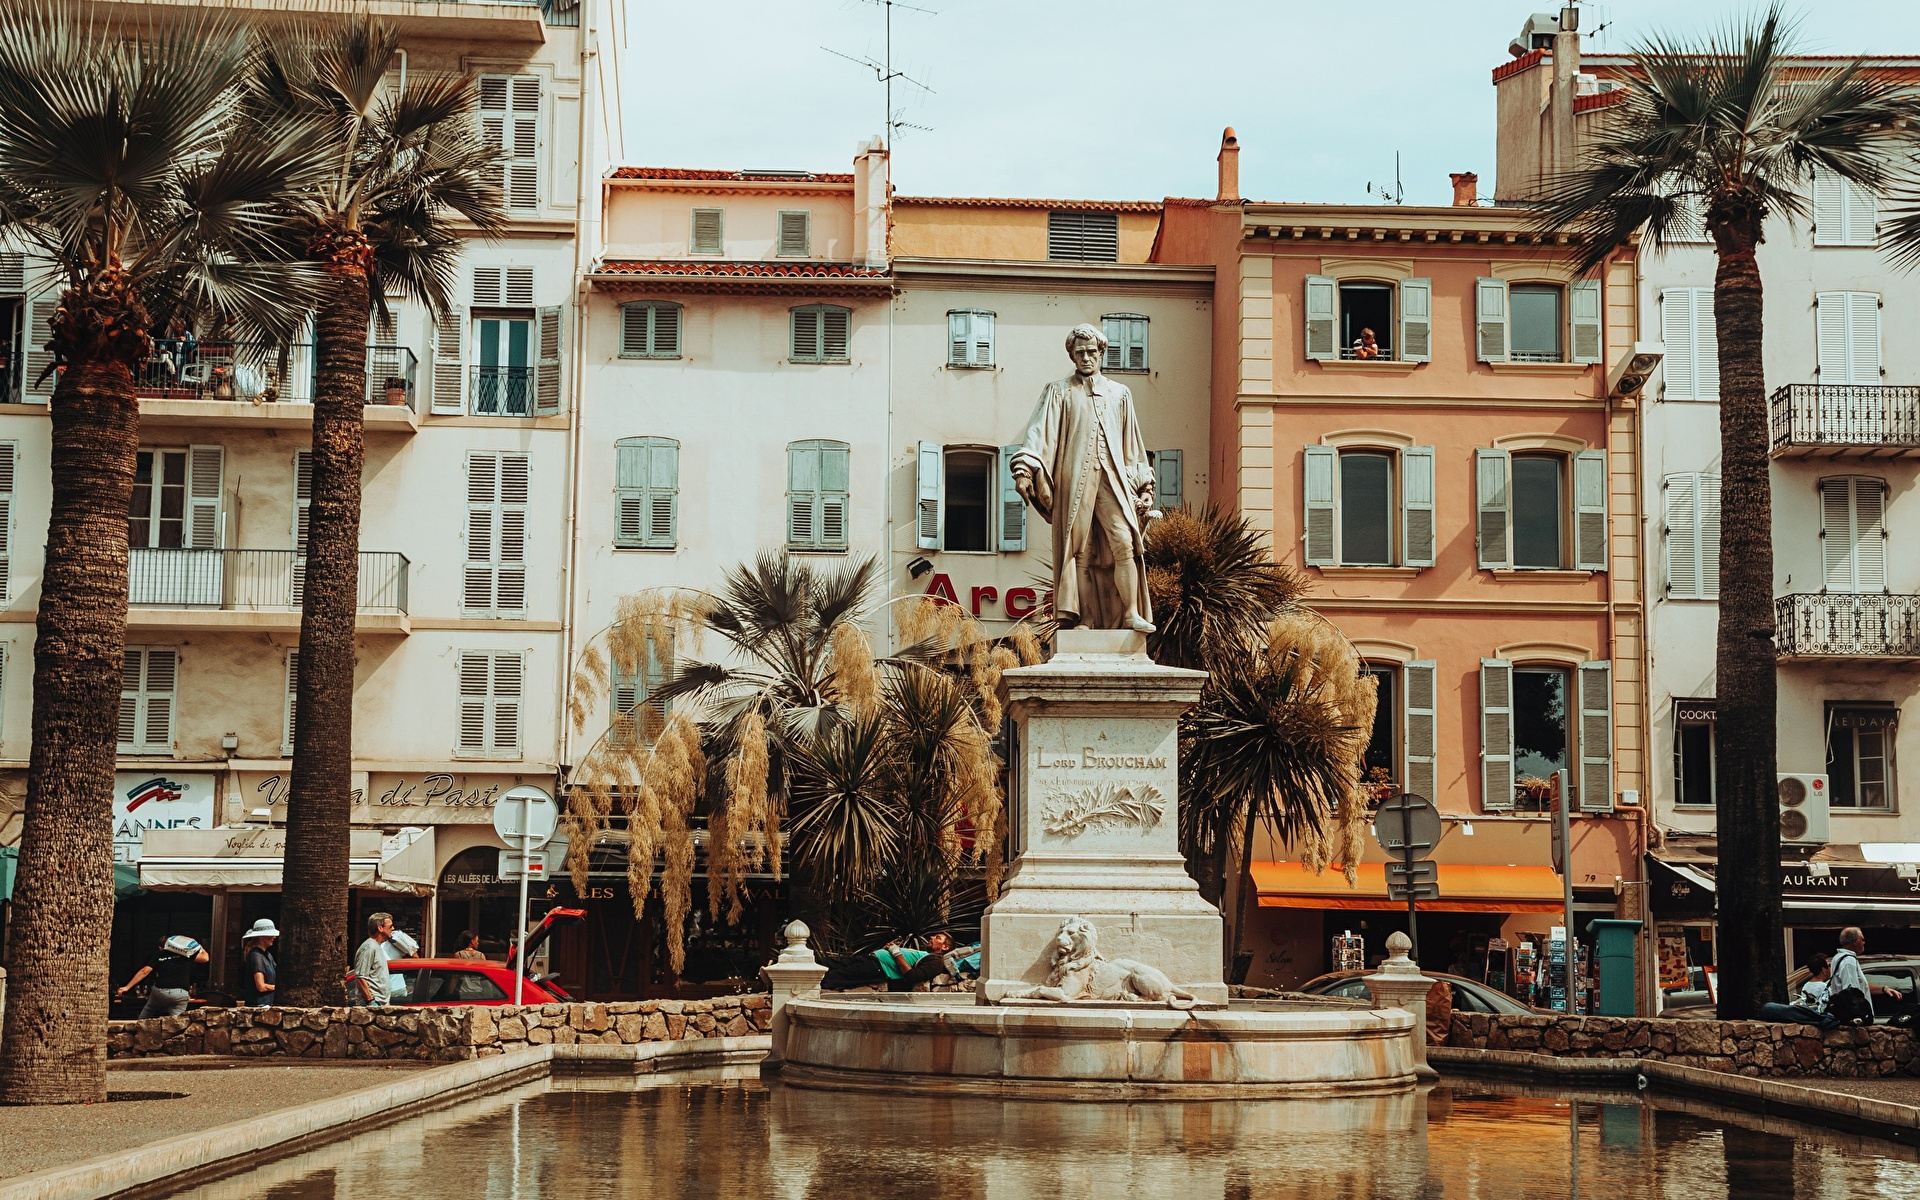 Desktop Wallpapers France Monuments Cannes, Lord Brougham Pond Palms Cities 1920x1200 palm trees